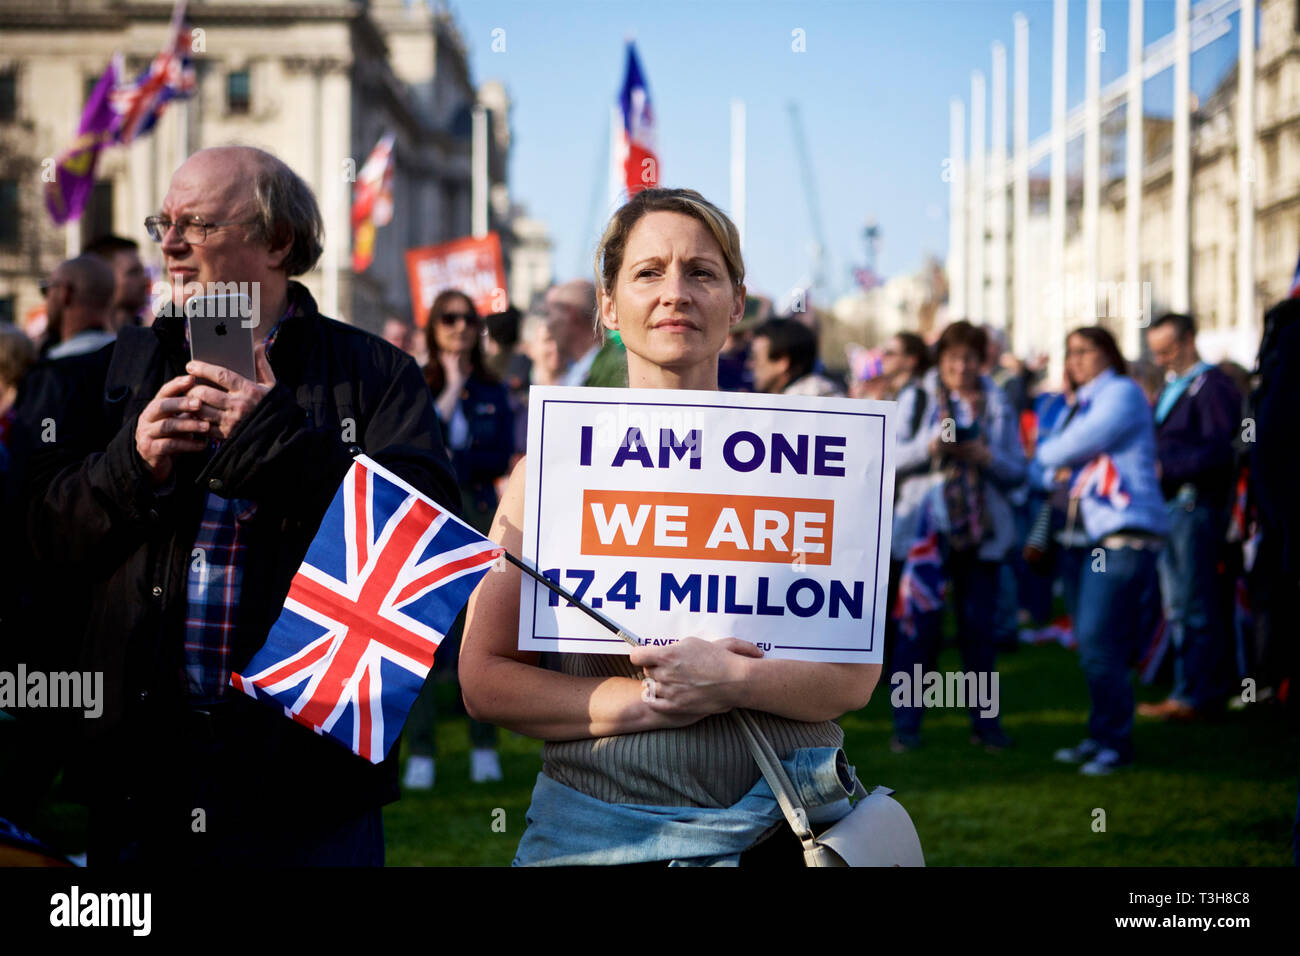 Political rally uk / politics uk / political protest - protester at a peaceful march pro Brexit rally on 29 March, Brexit day 2019. UK Democracy. - Stock Image